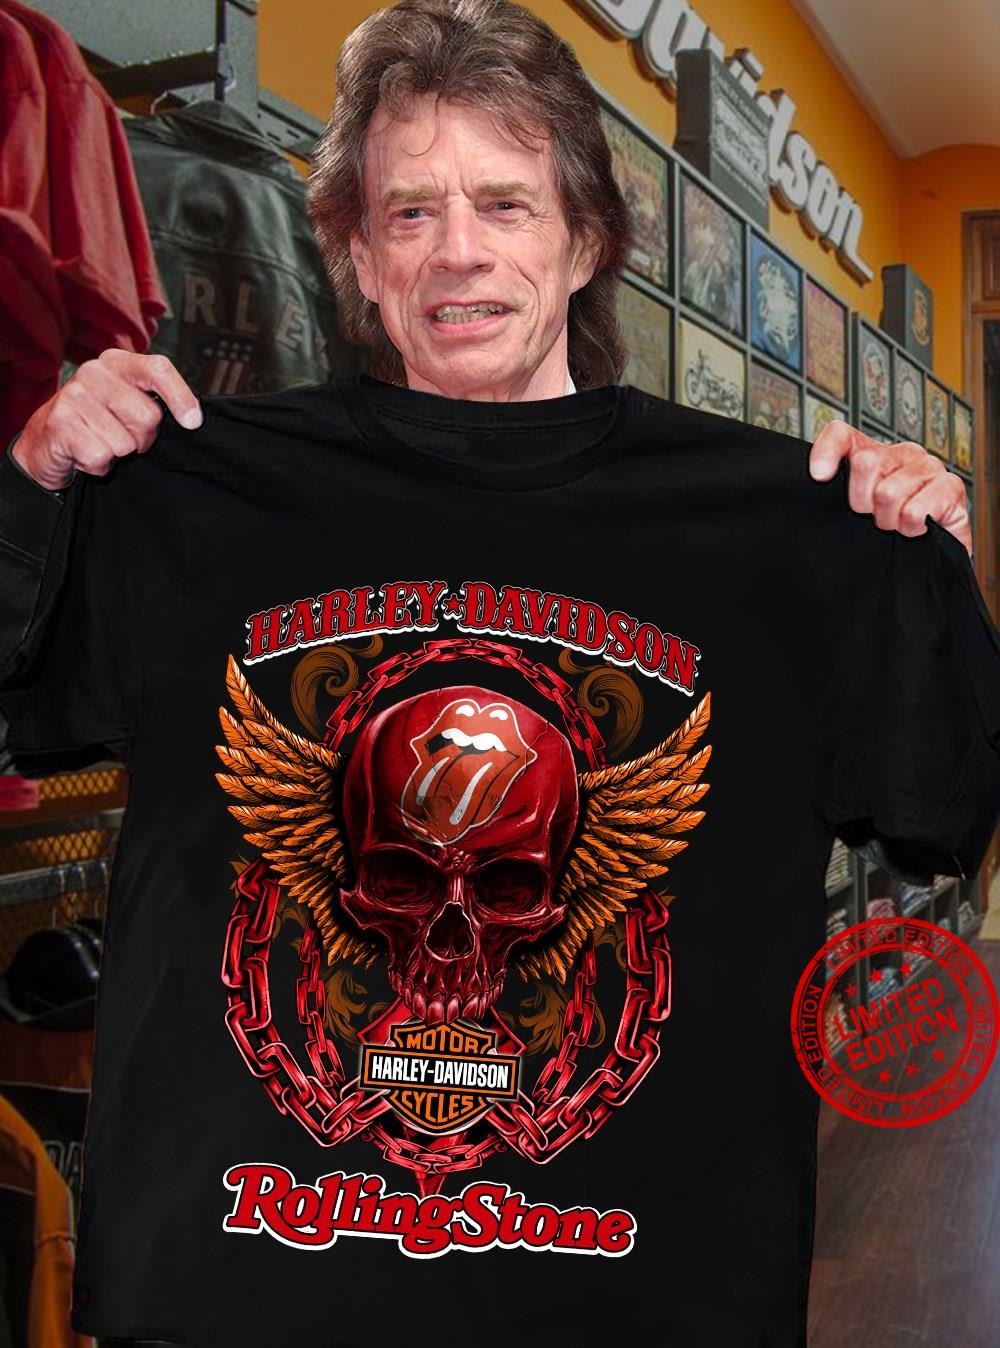 Harley Davidson Motorcycle Company And Rolling Stone Shirt